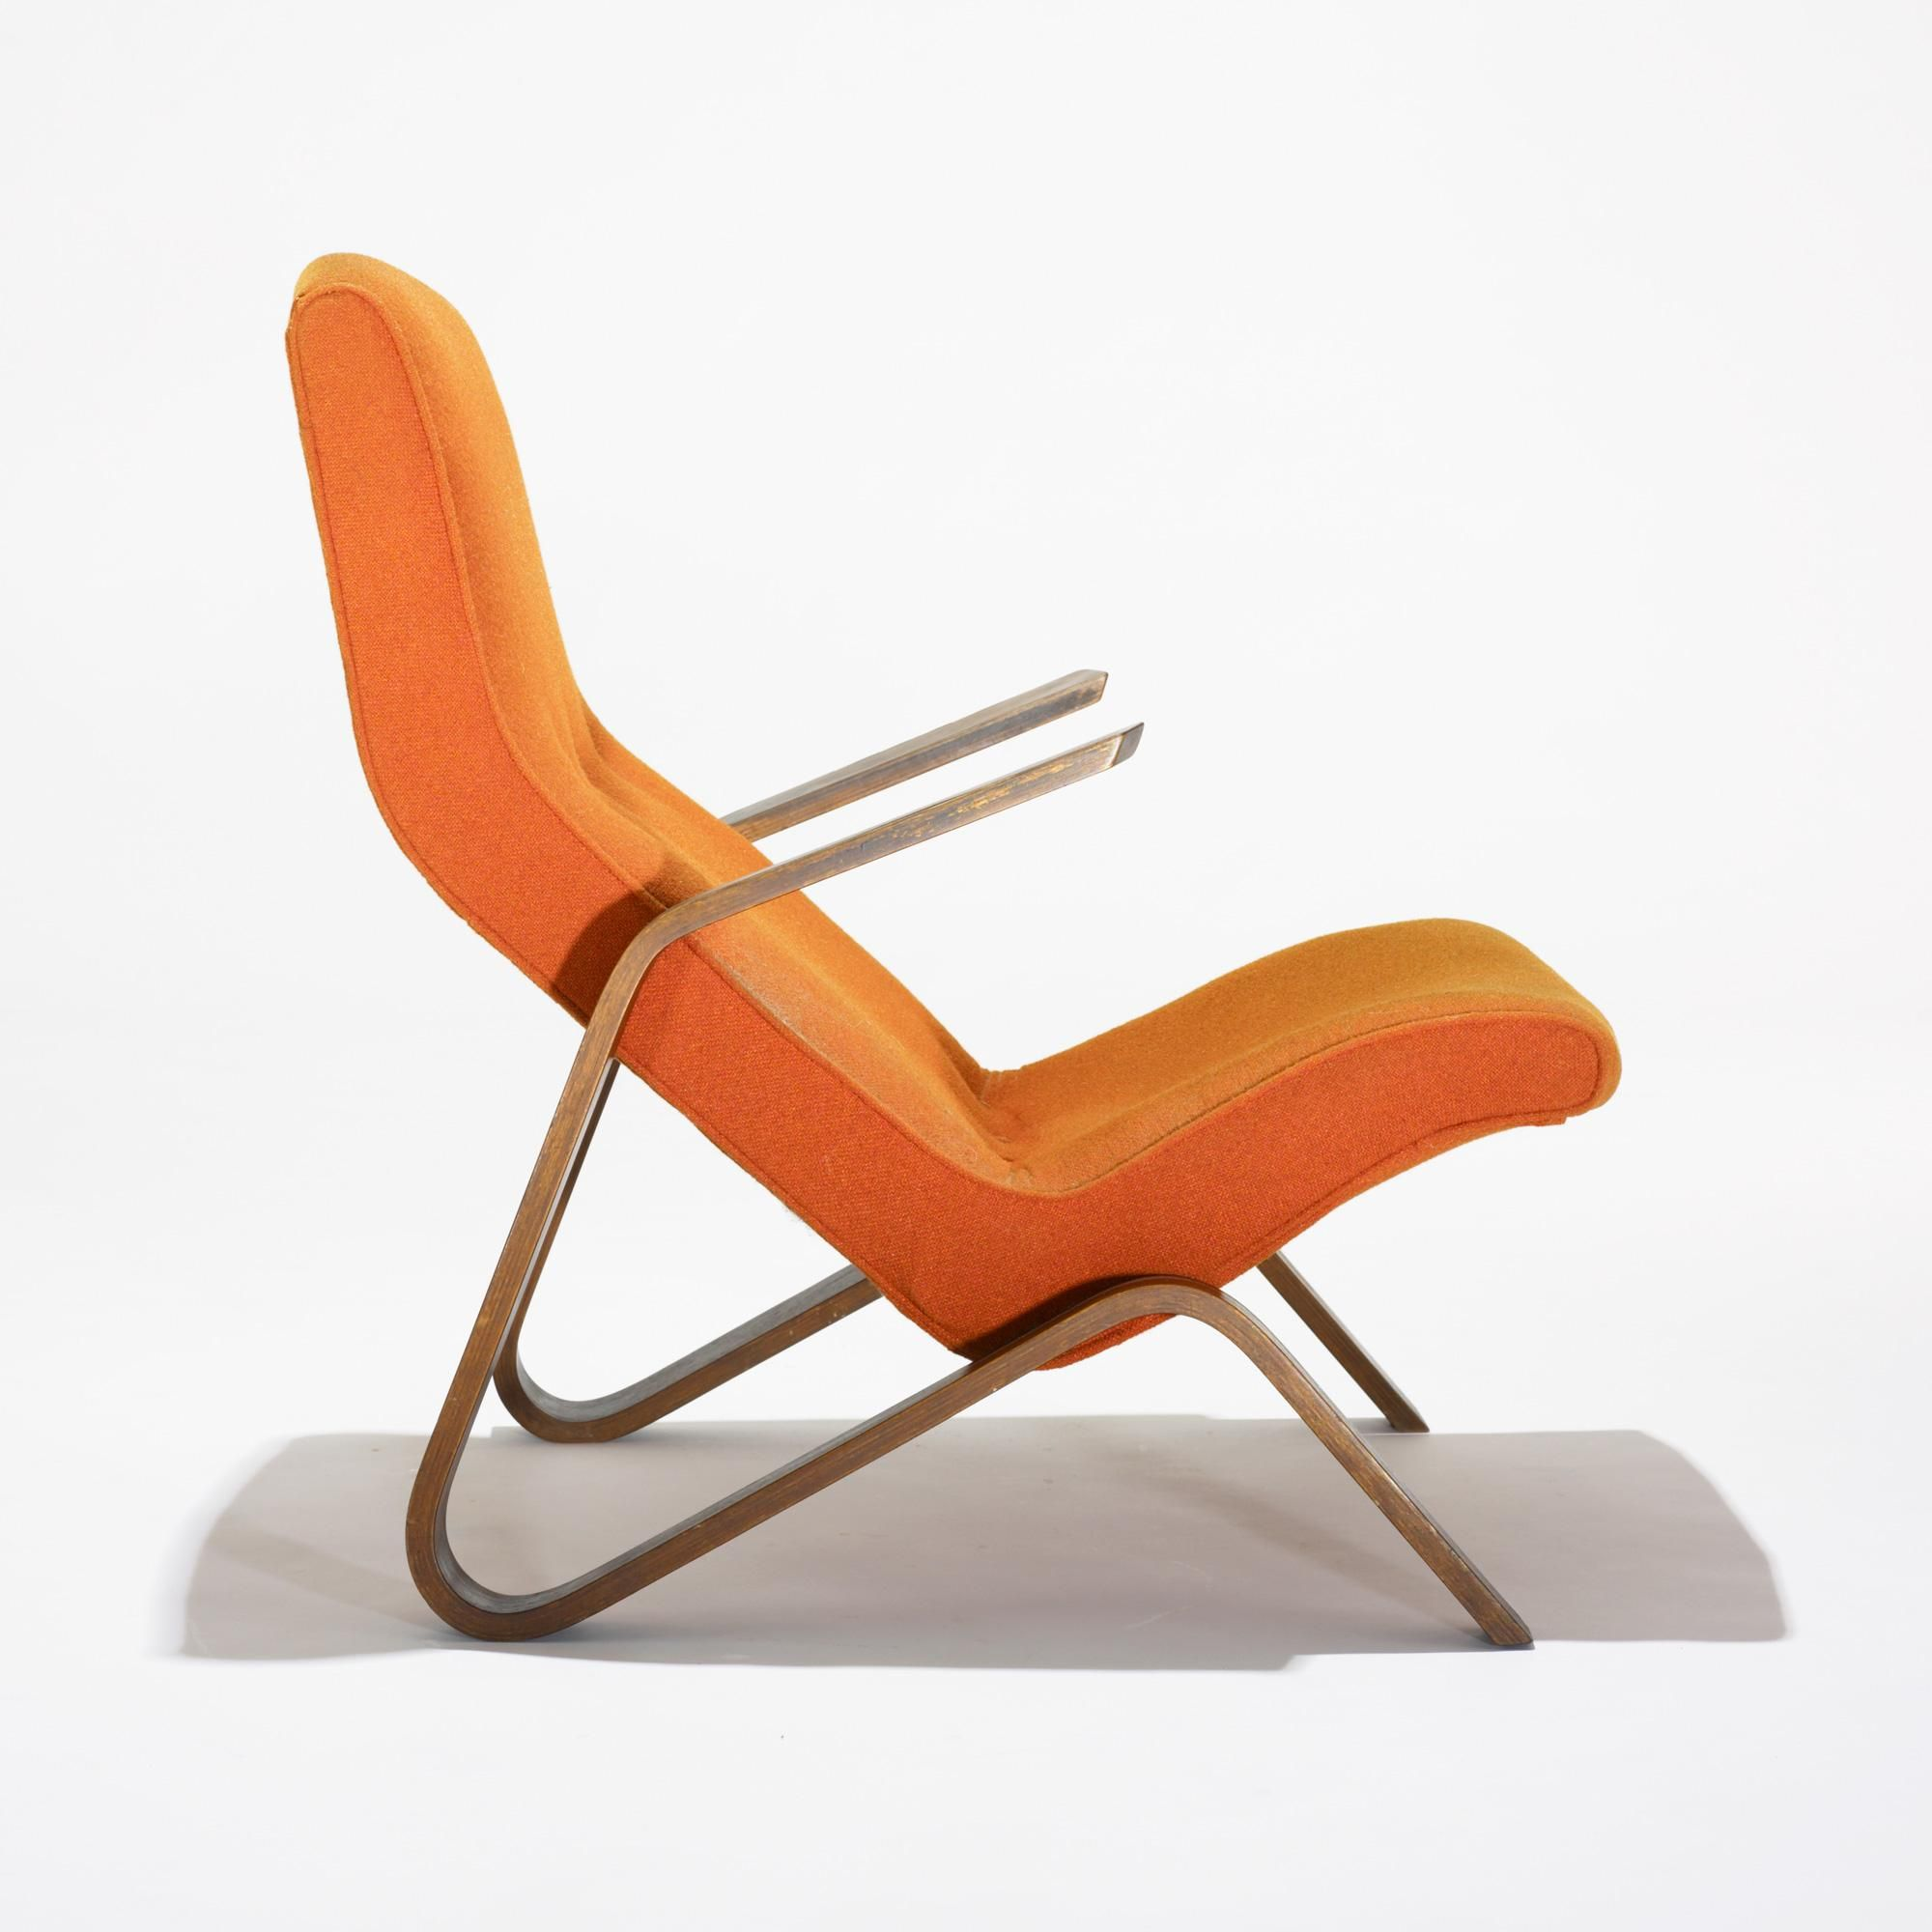 Charming Eero Saarinenu0027s Grasshopper Chair, Designed For Knoll In 1946